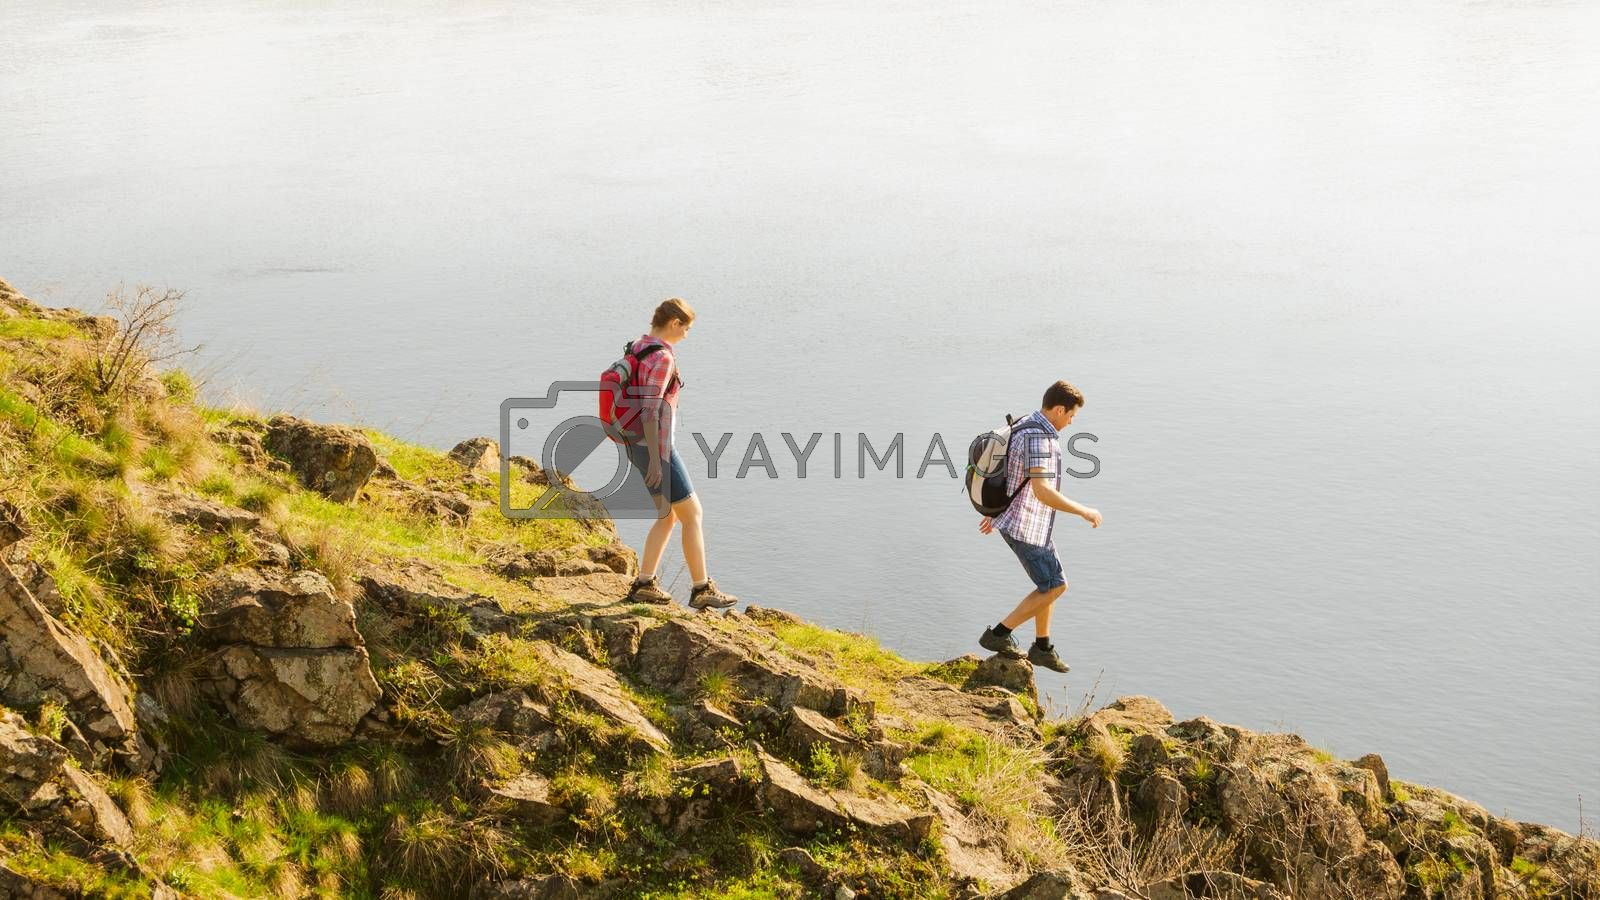 Couple of Young Happy Travelers Hiking with Backpacks on the Beautiful Rocky Trail at Warm Sunny Evening. Family Travel and Adventure Concept.